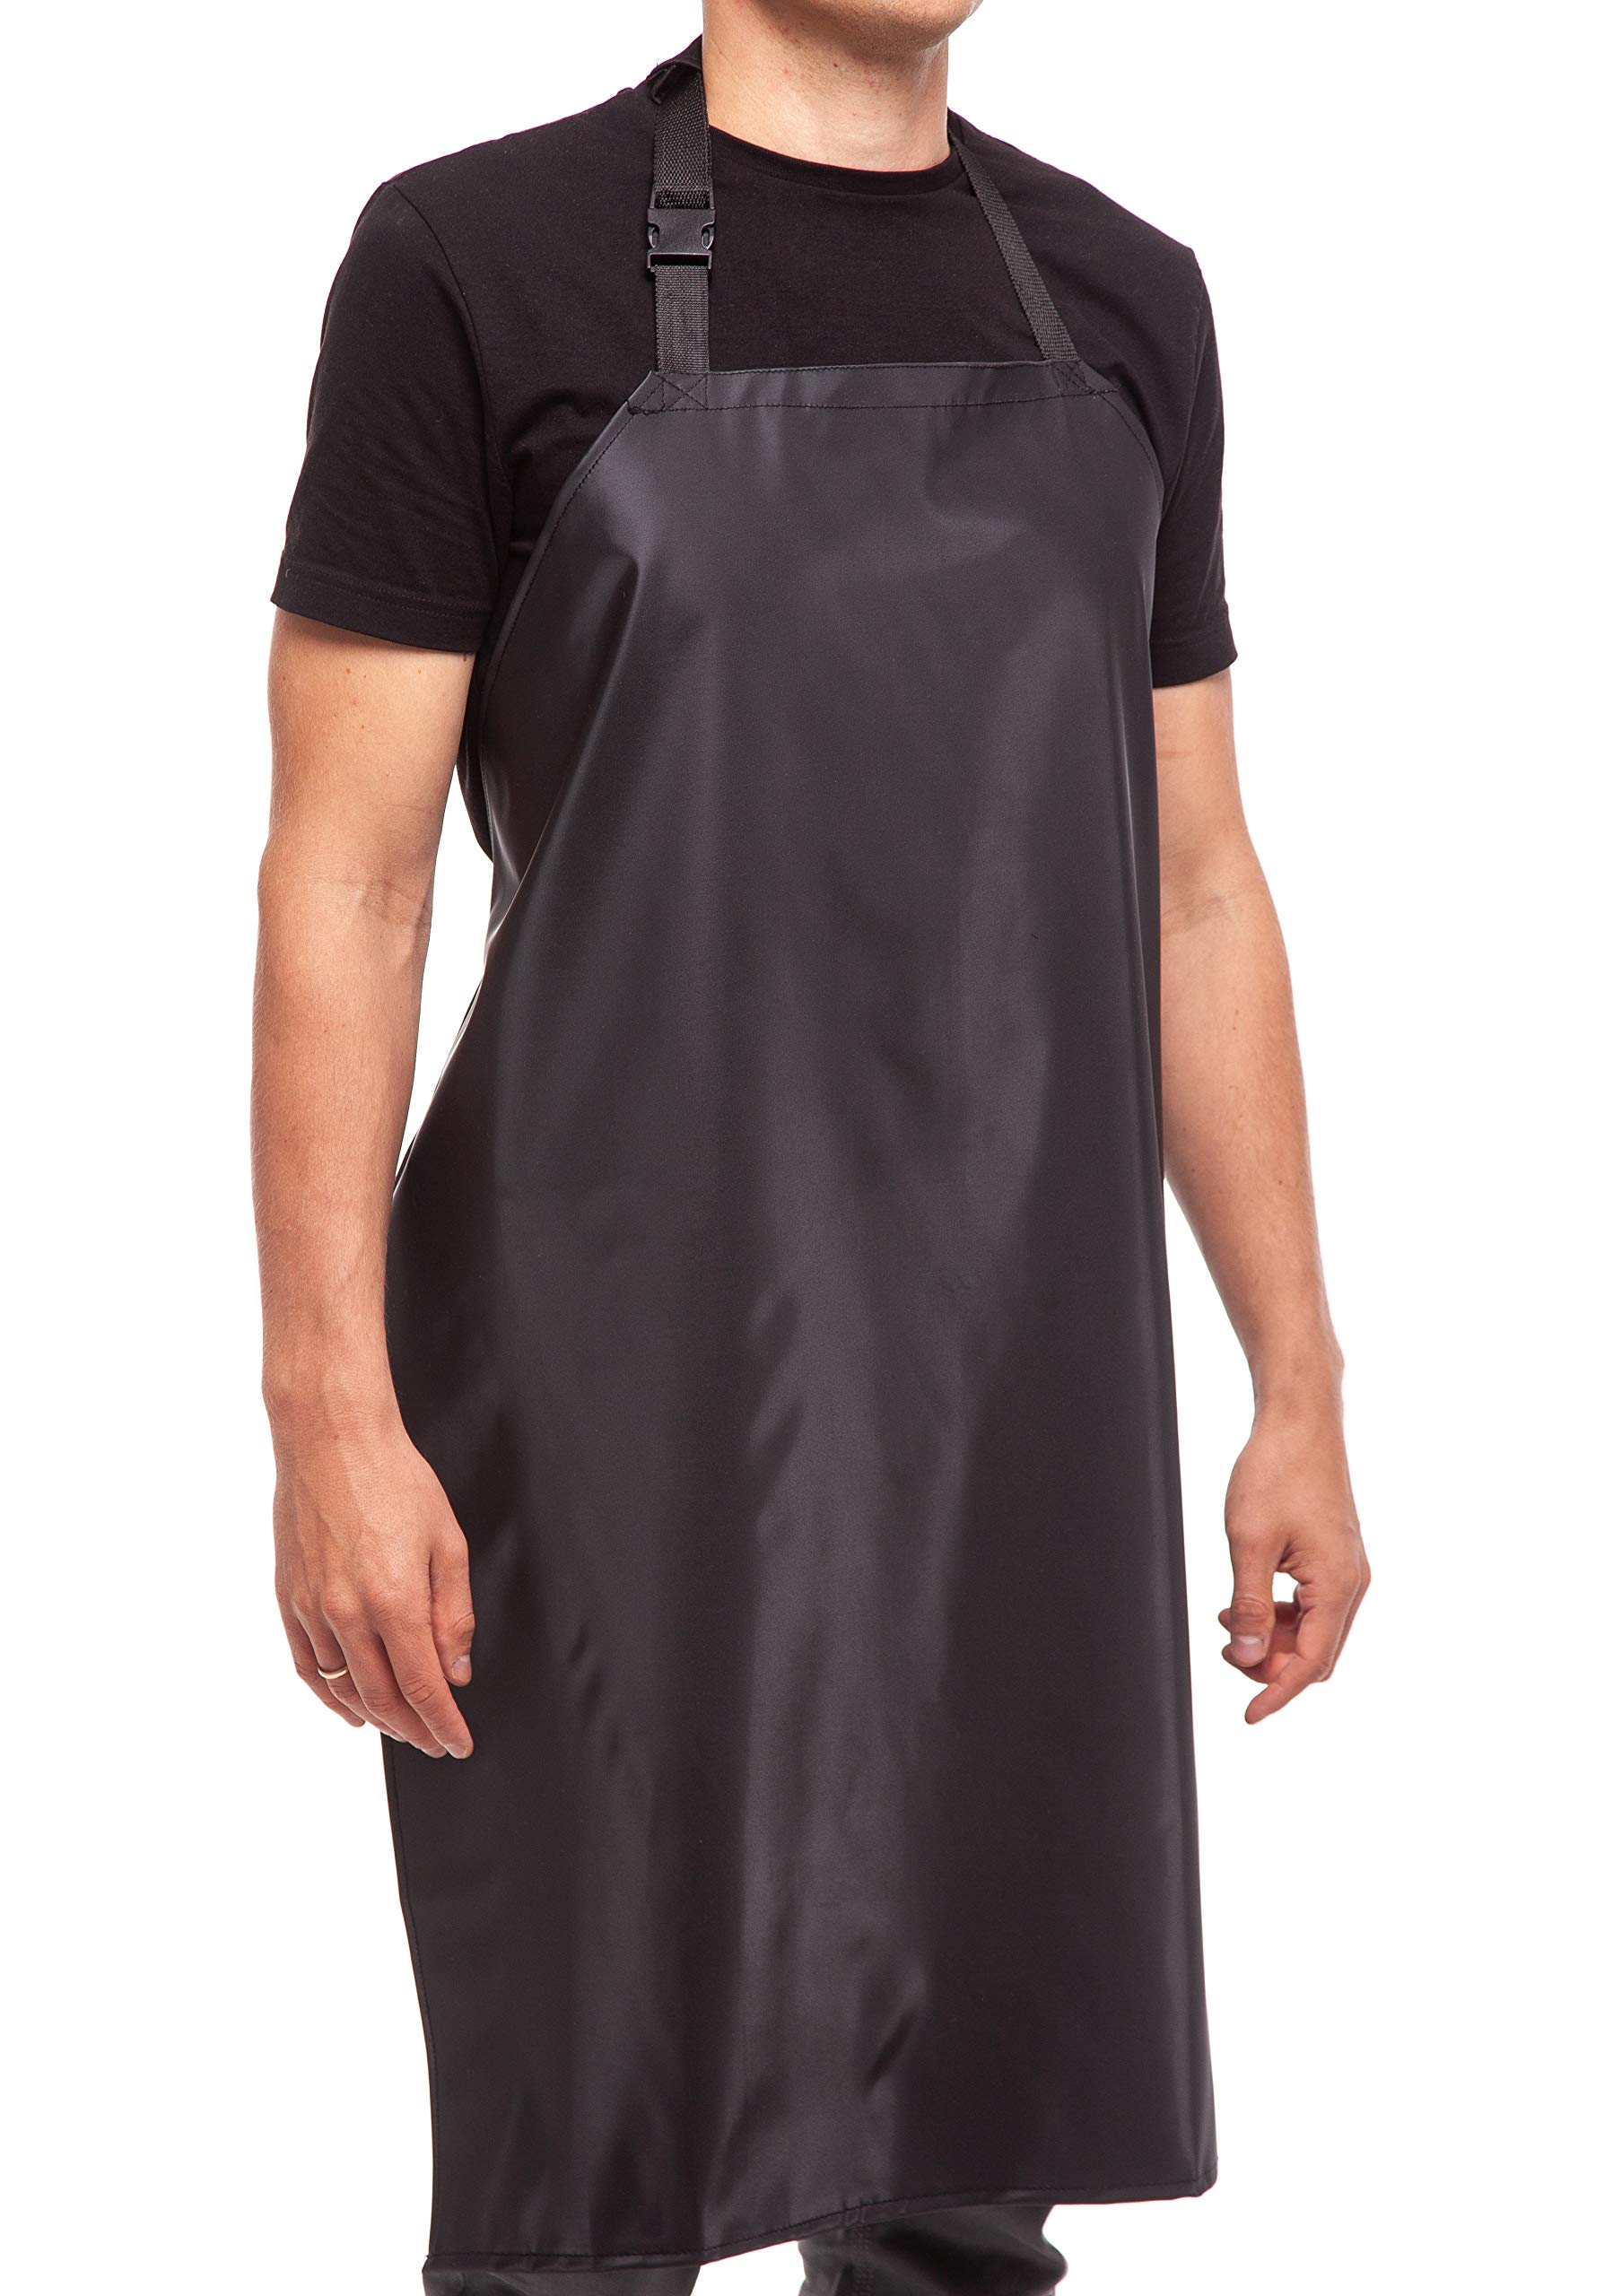 Waterproof Rubber Vinyl Apron - 35'' Upgraded 2018 Light Model - Best for Staying Dry When Dishwashing, Lab Work, Butcher, Dog Grooming, Cleaning Fish, Projects - Industrial Chemical Resistant Plastic by Aulett Home